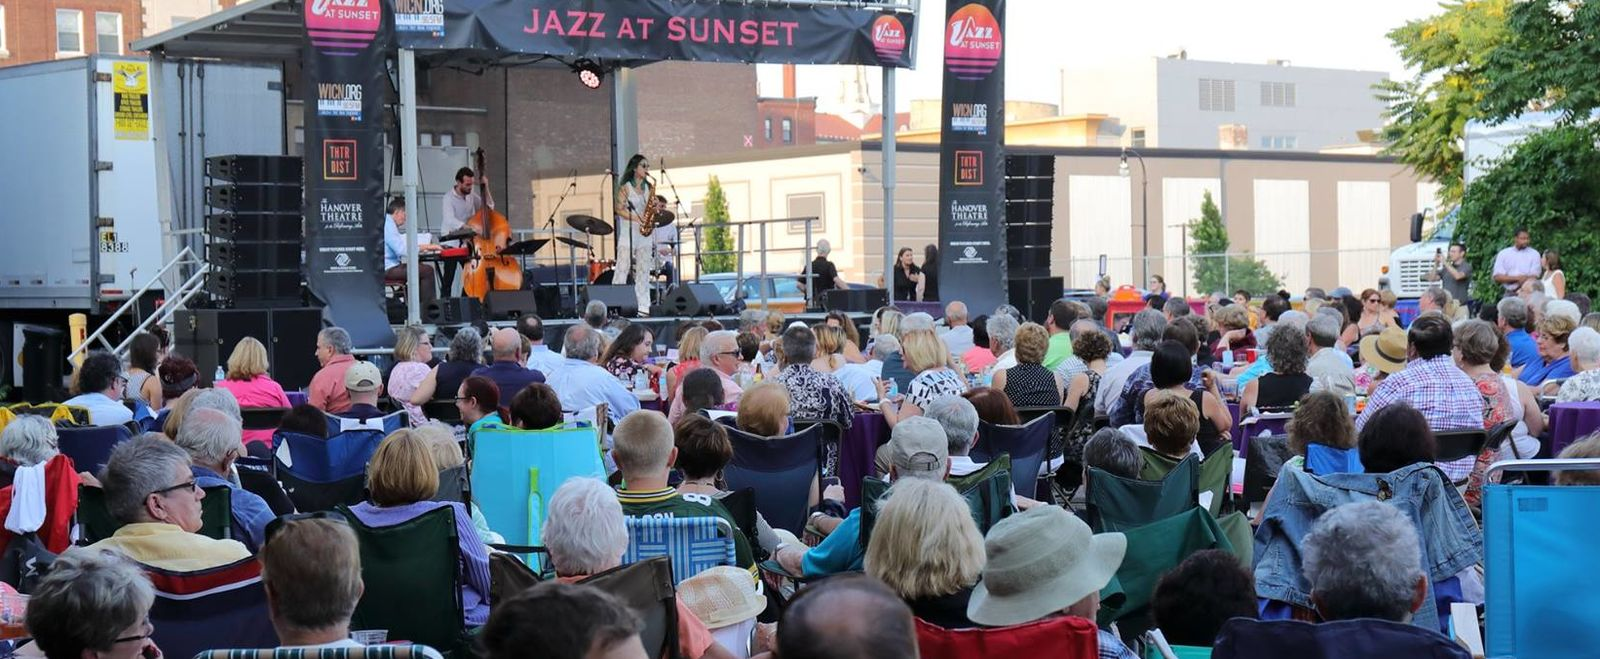 Jazz at Sunset Hanover